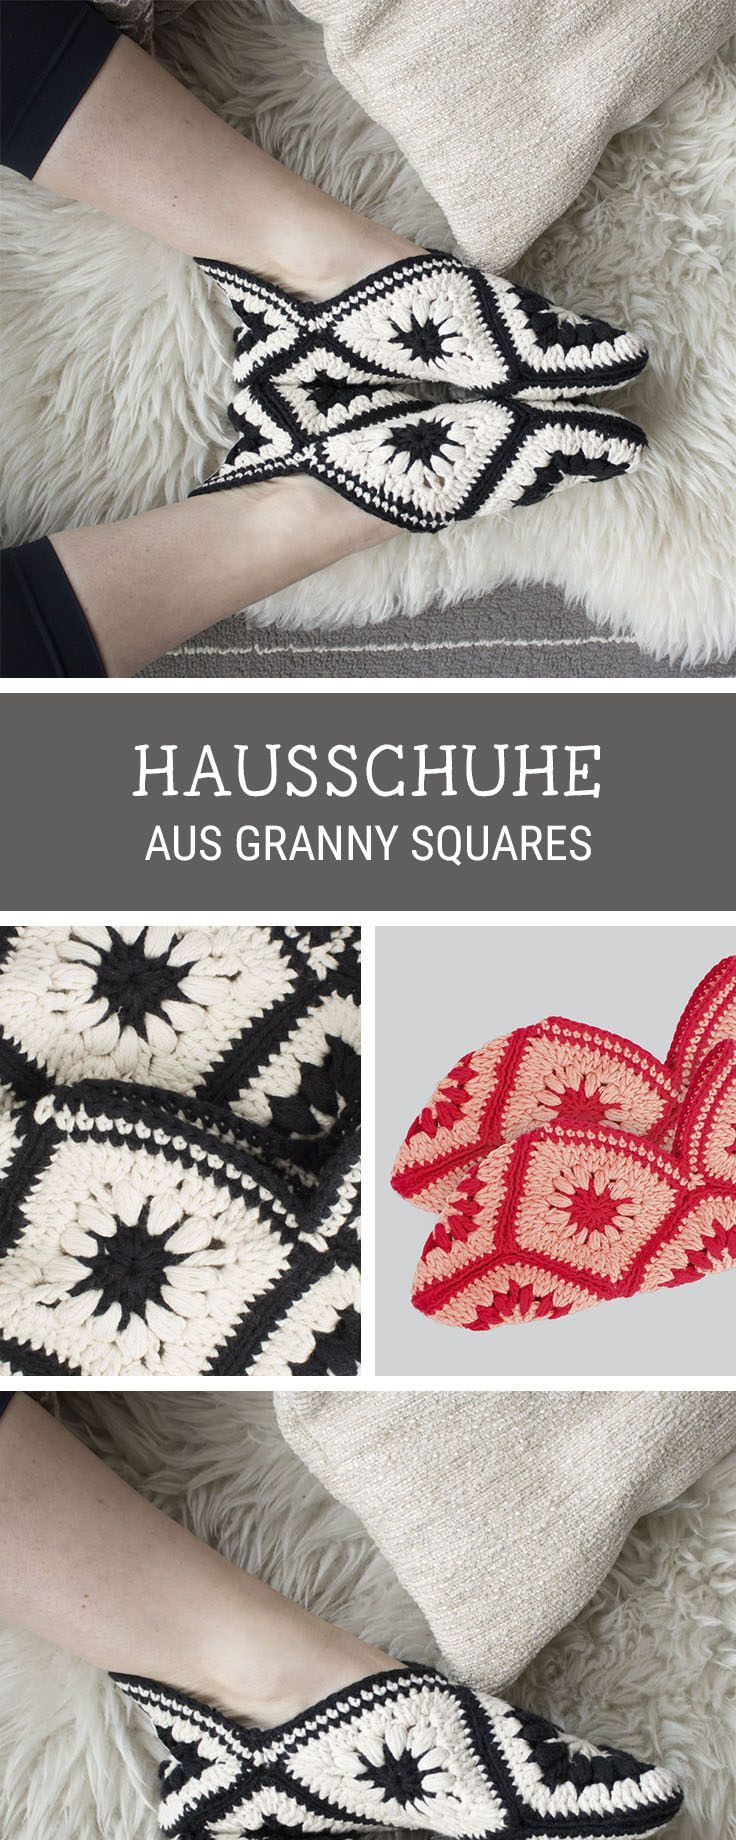 Hkeln diy anleitungen crochet knit crochet and crochet shoes diy hkelanleitung fr hausschuhe aus granny squares crochet pattern for cozy slippers made of bankloansurffo Choice Image